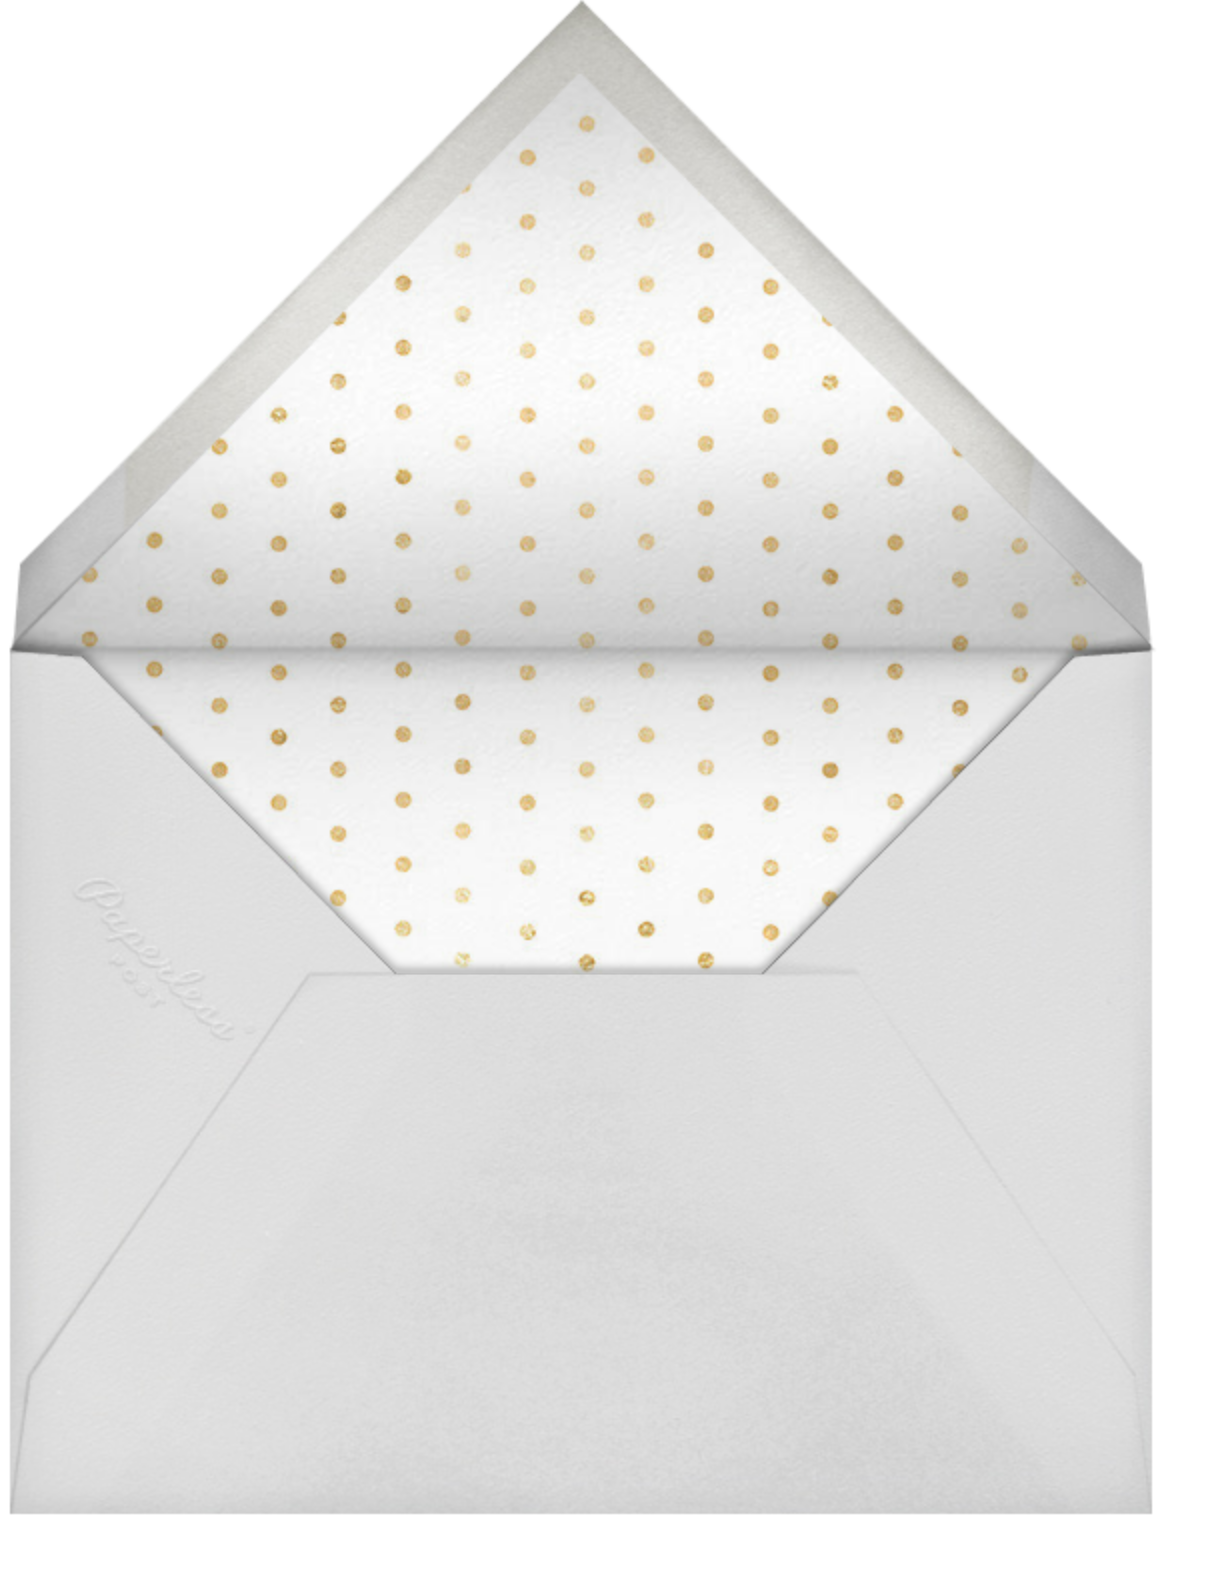 Monkey Suits - Paperless Post - Cocktail party - envelope back